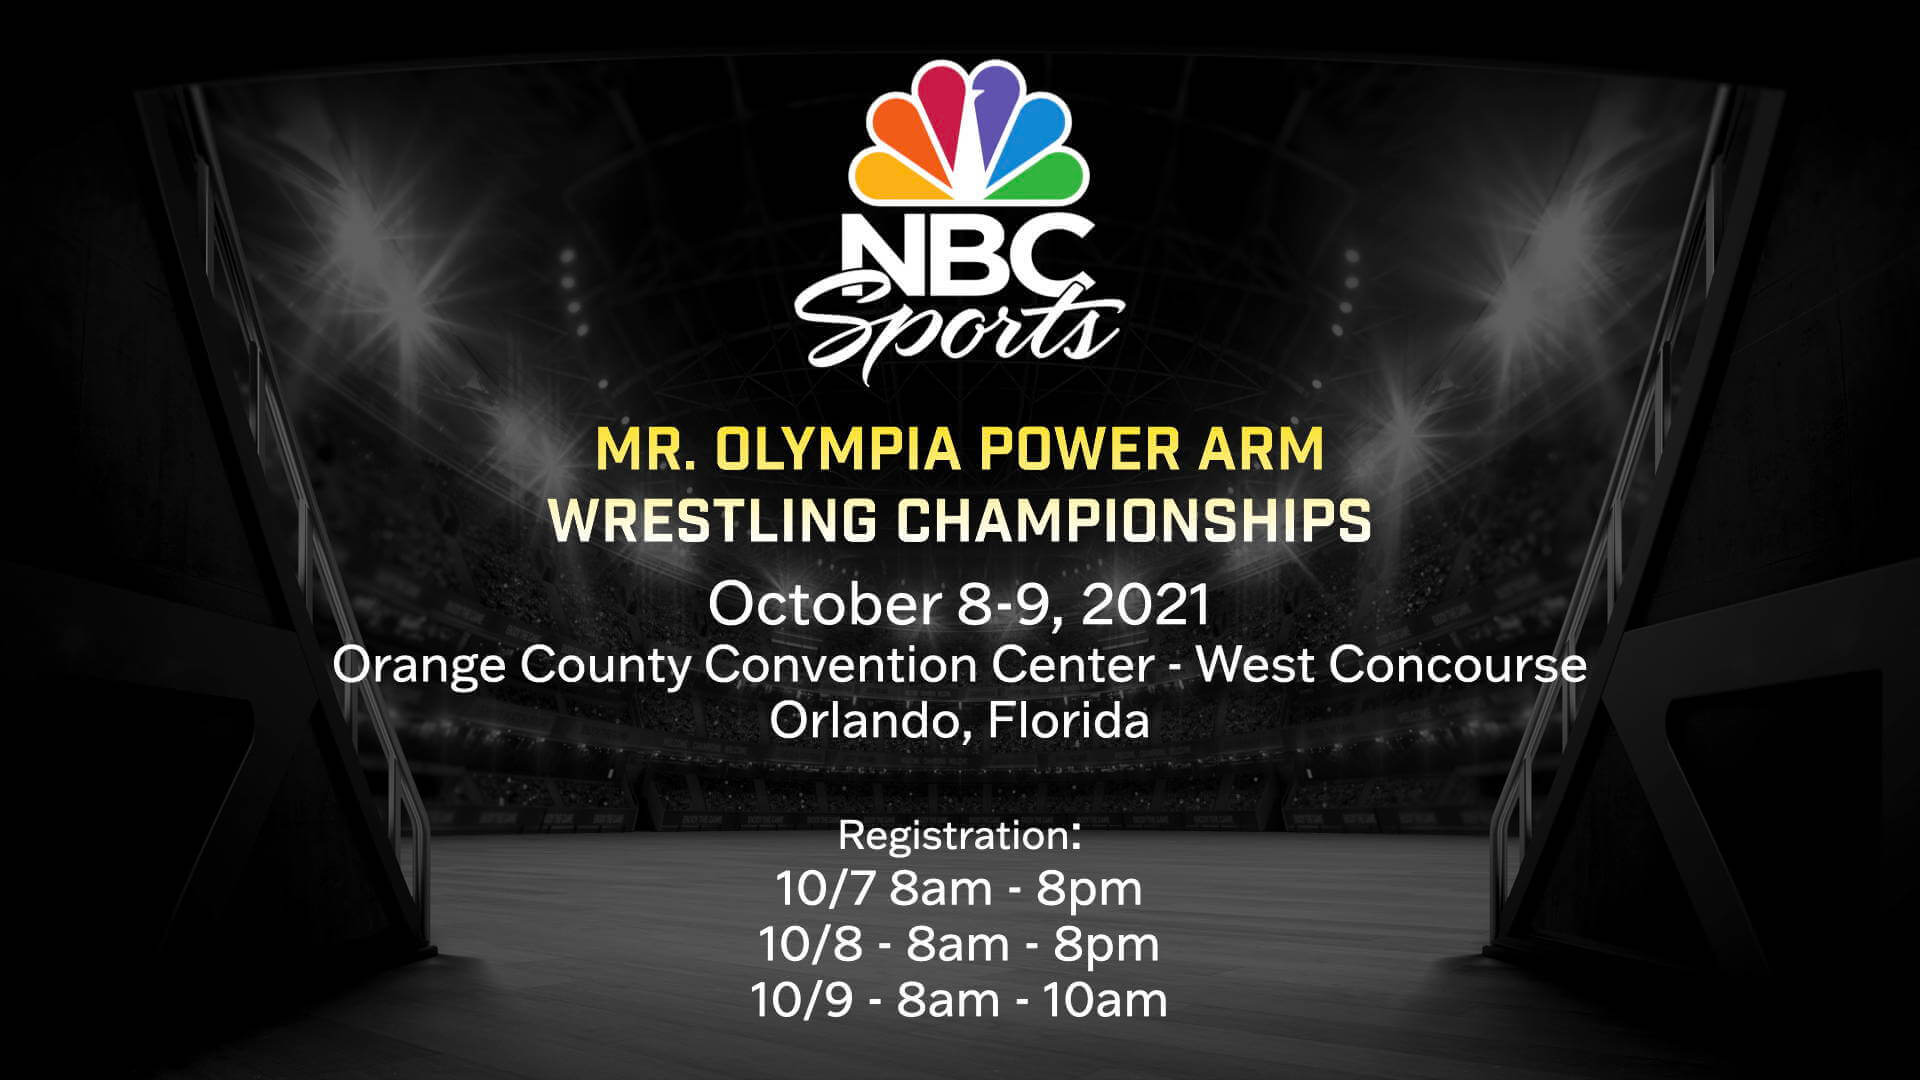 The Mr. Olympia Power Arm Wrestling Championships